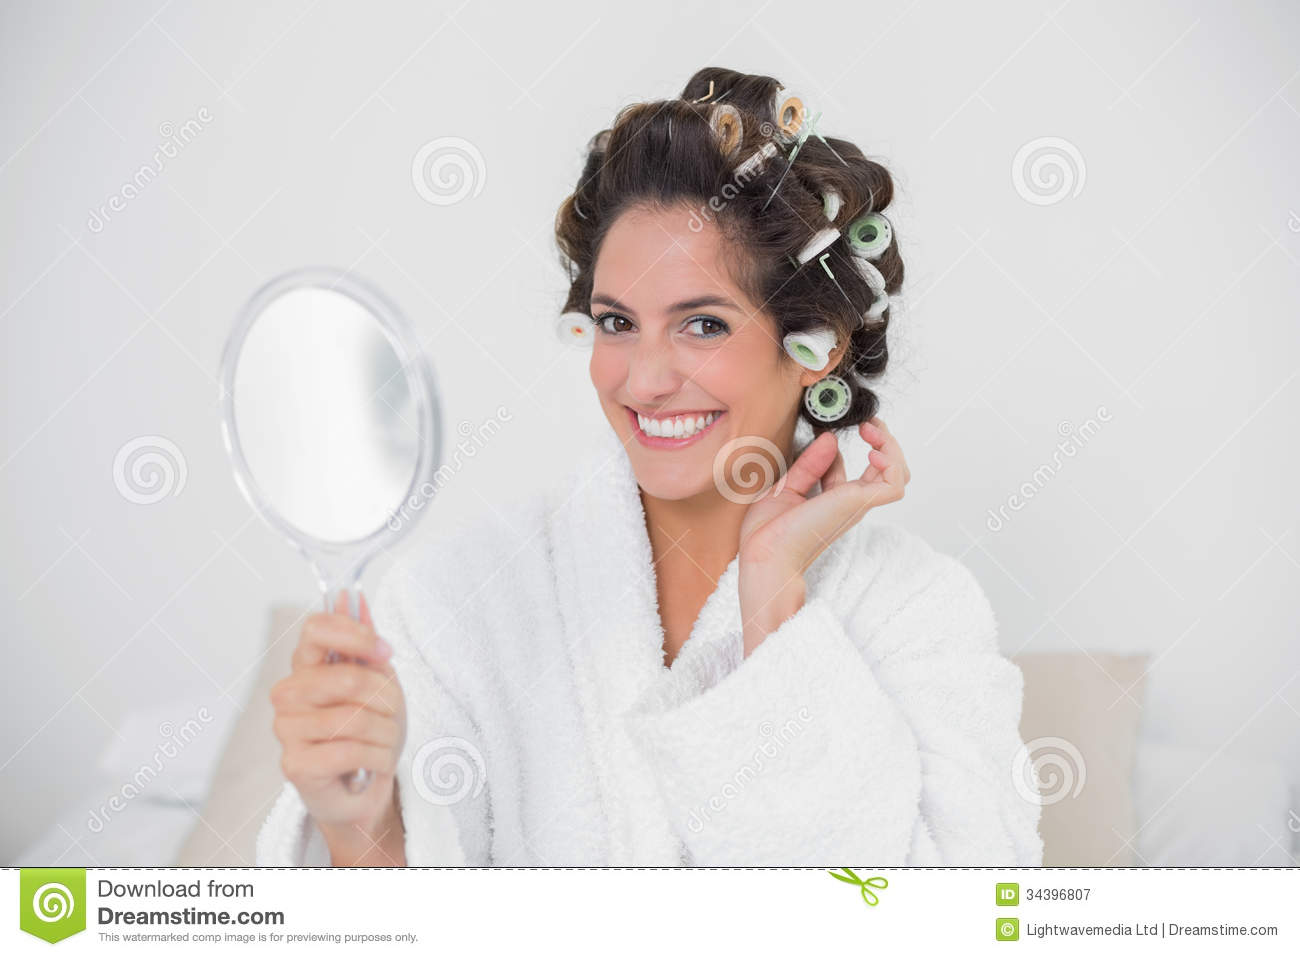 Hand Mirror Cut Out Stock Photos & Hand Mirror Cut Out Stock ...